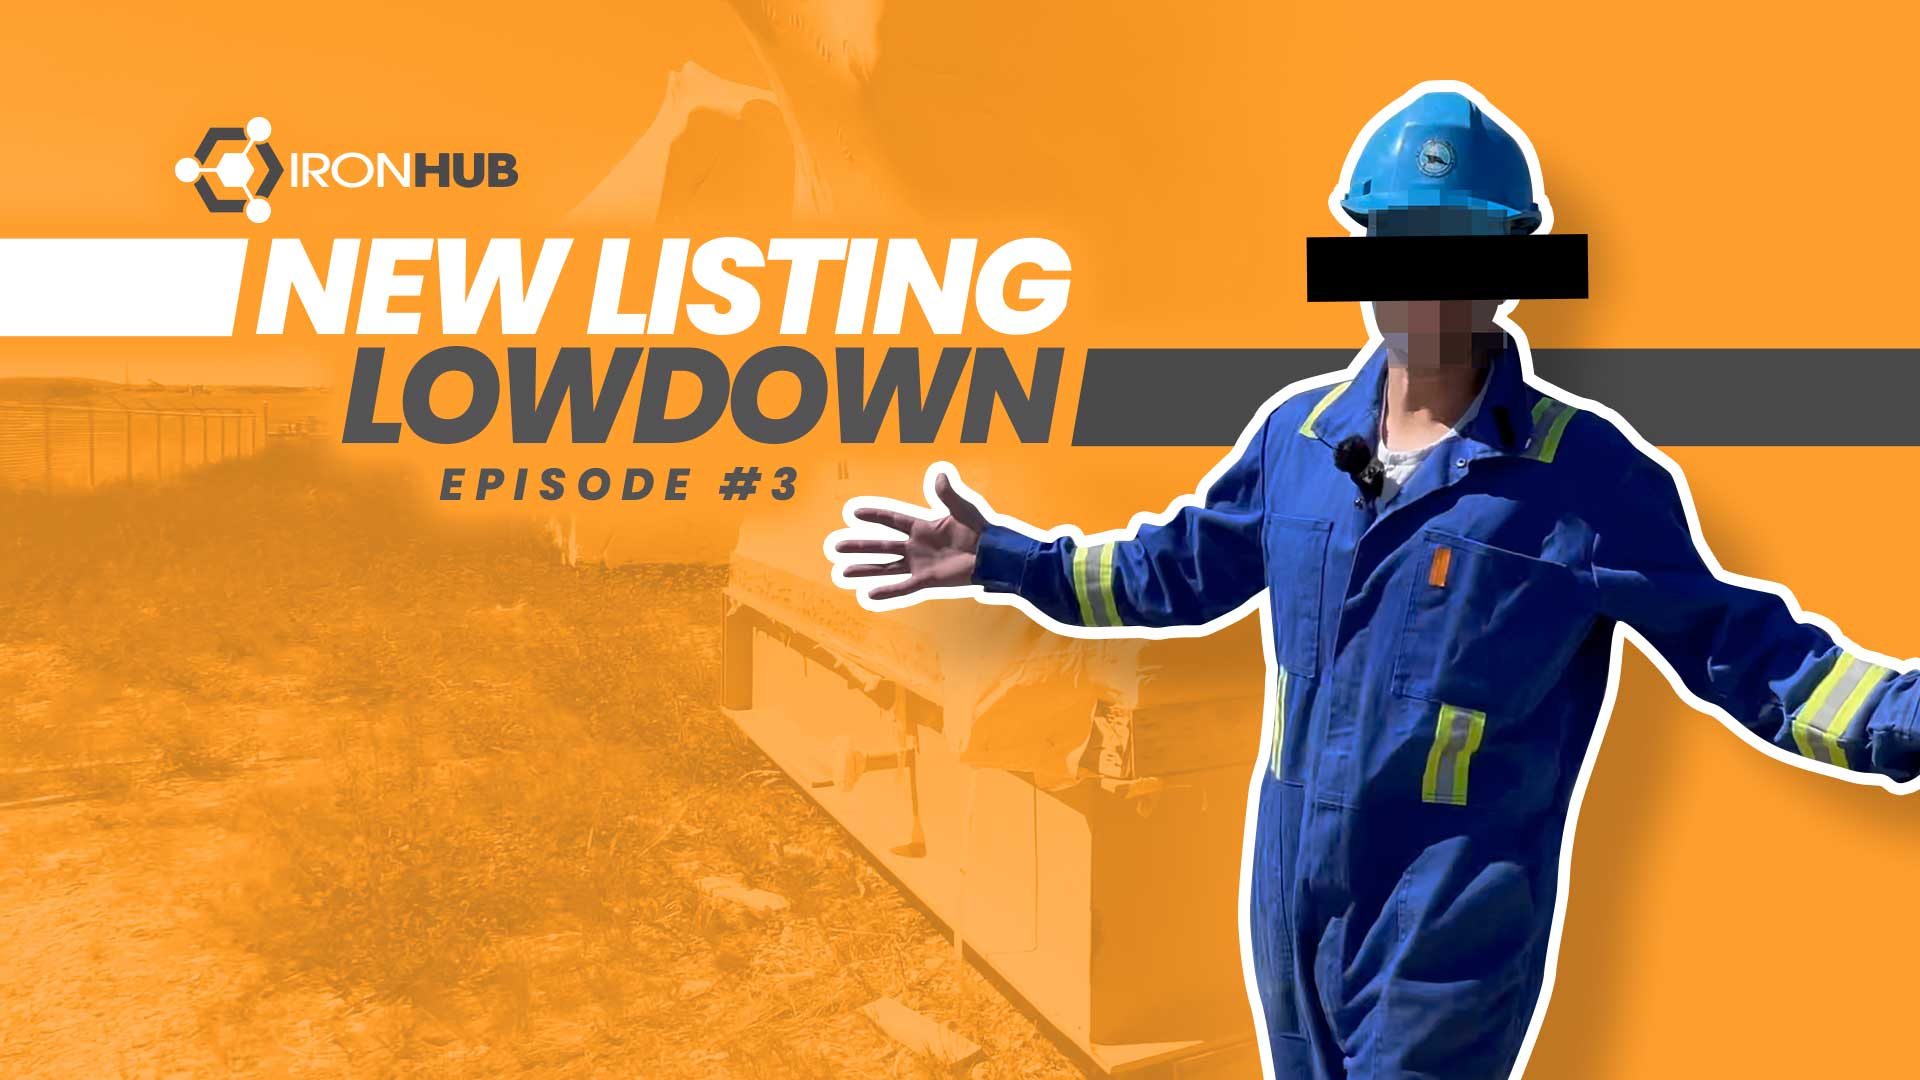 Episode #3 of IronHub New Listing Lowdown is Now Out! Brand New Ssrplus Gas Processing Equipment For Sale in Alberta, Canada